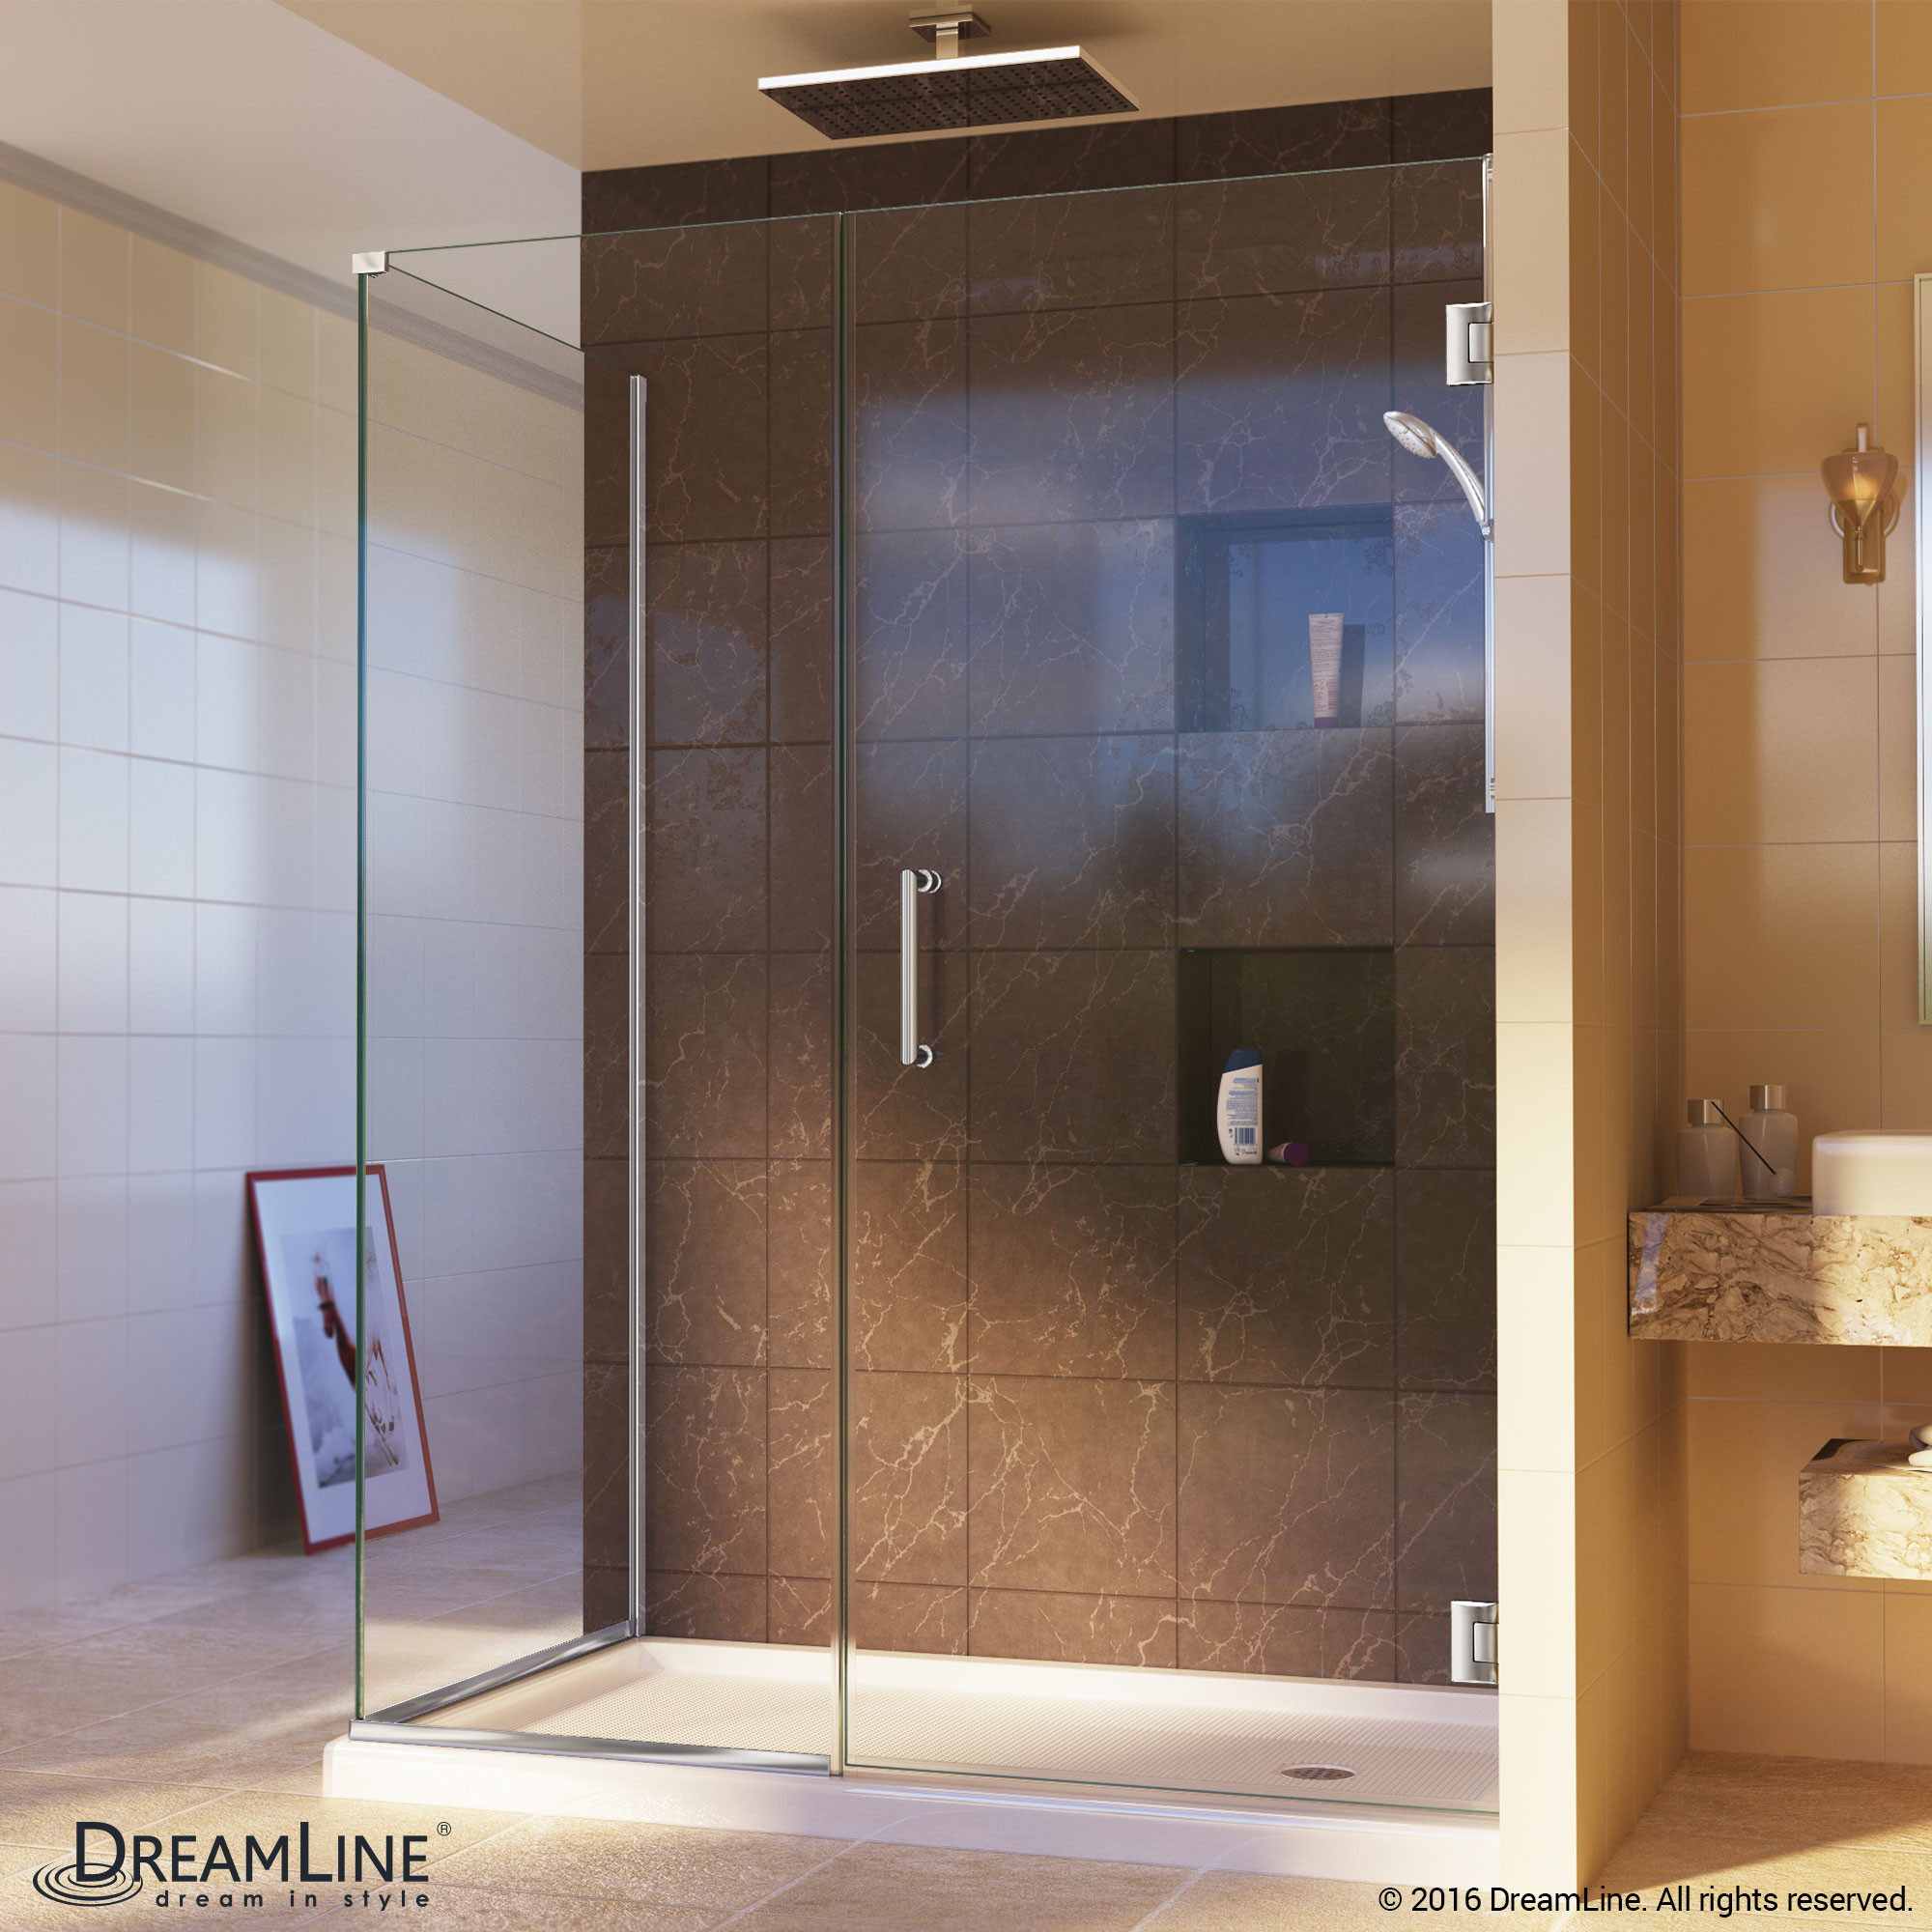 DreamLine SHEN-24515300-01 Unidoor Plus Hinged Shower Enclosure In Chrome Finish Hardware